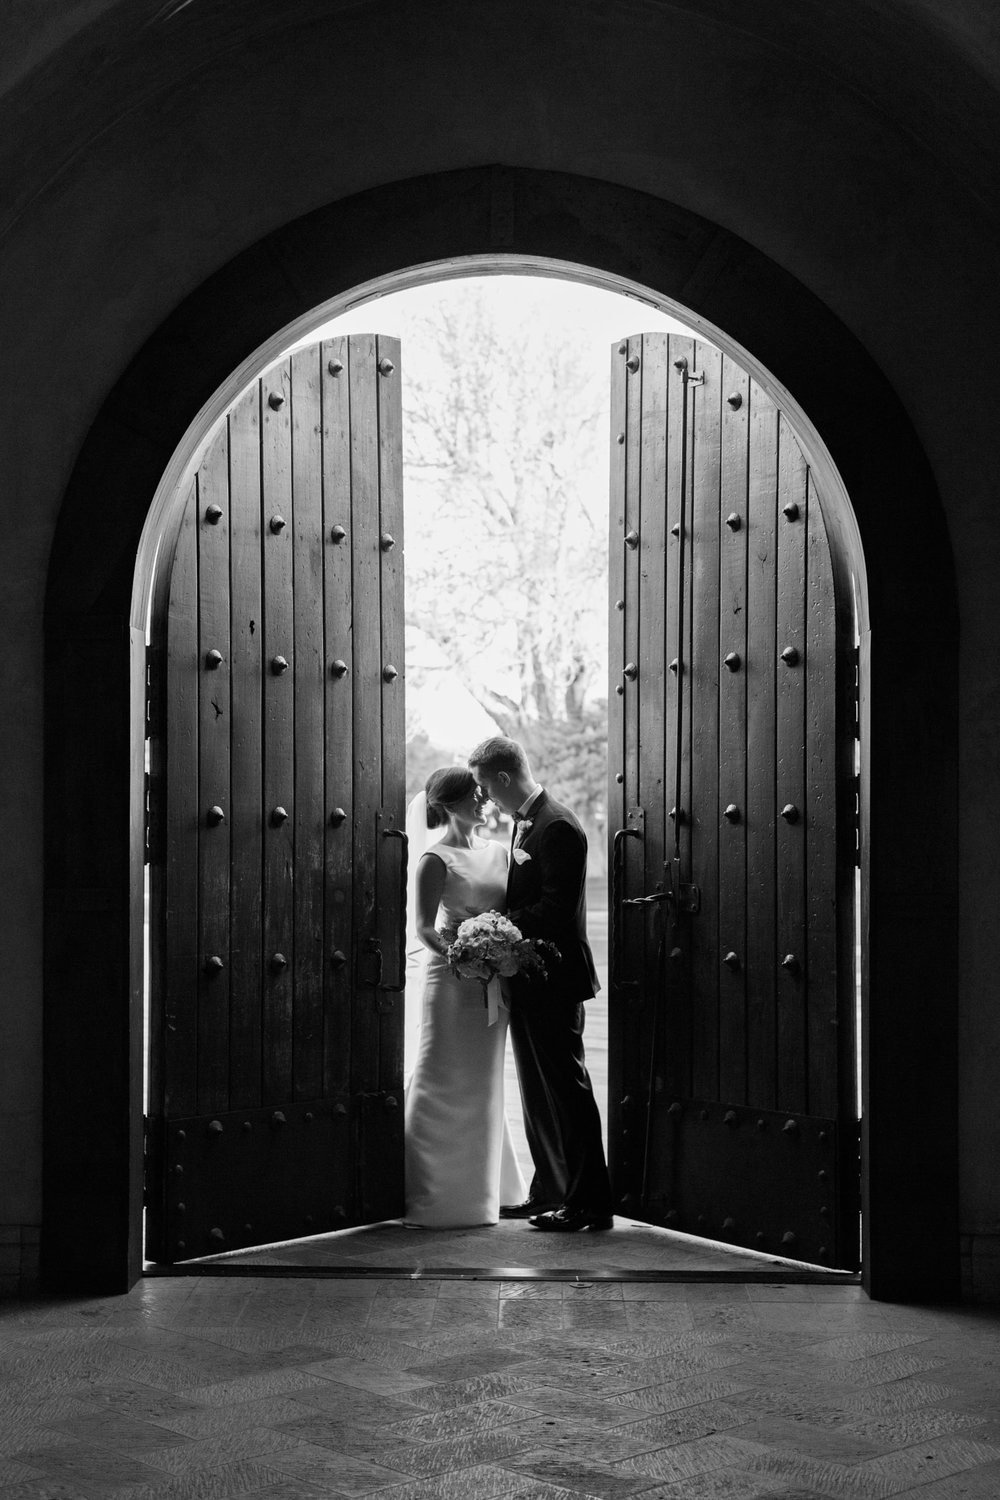 Chapel door silhouette of bride and groom